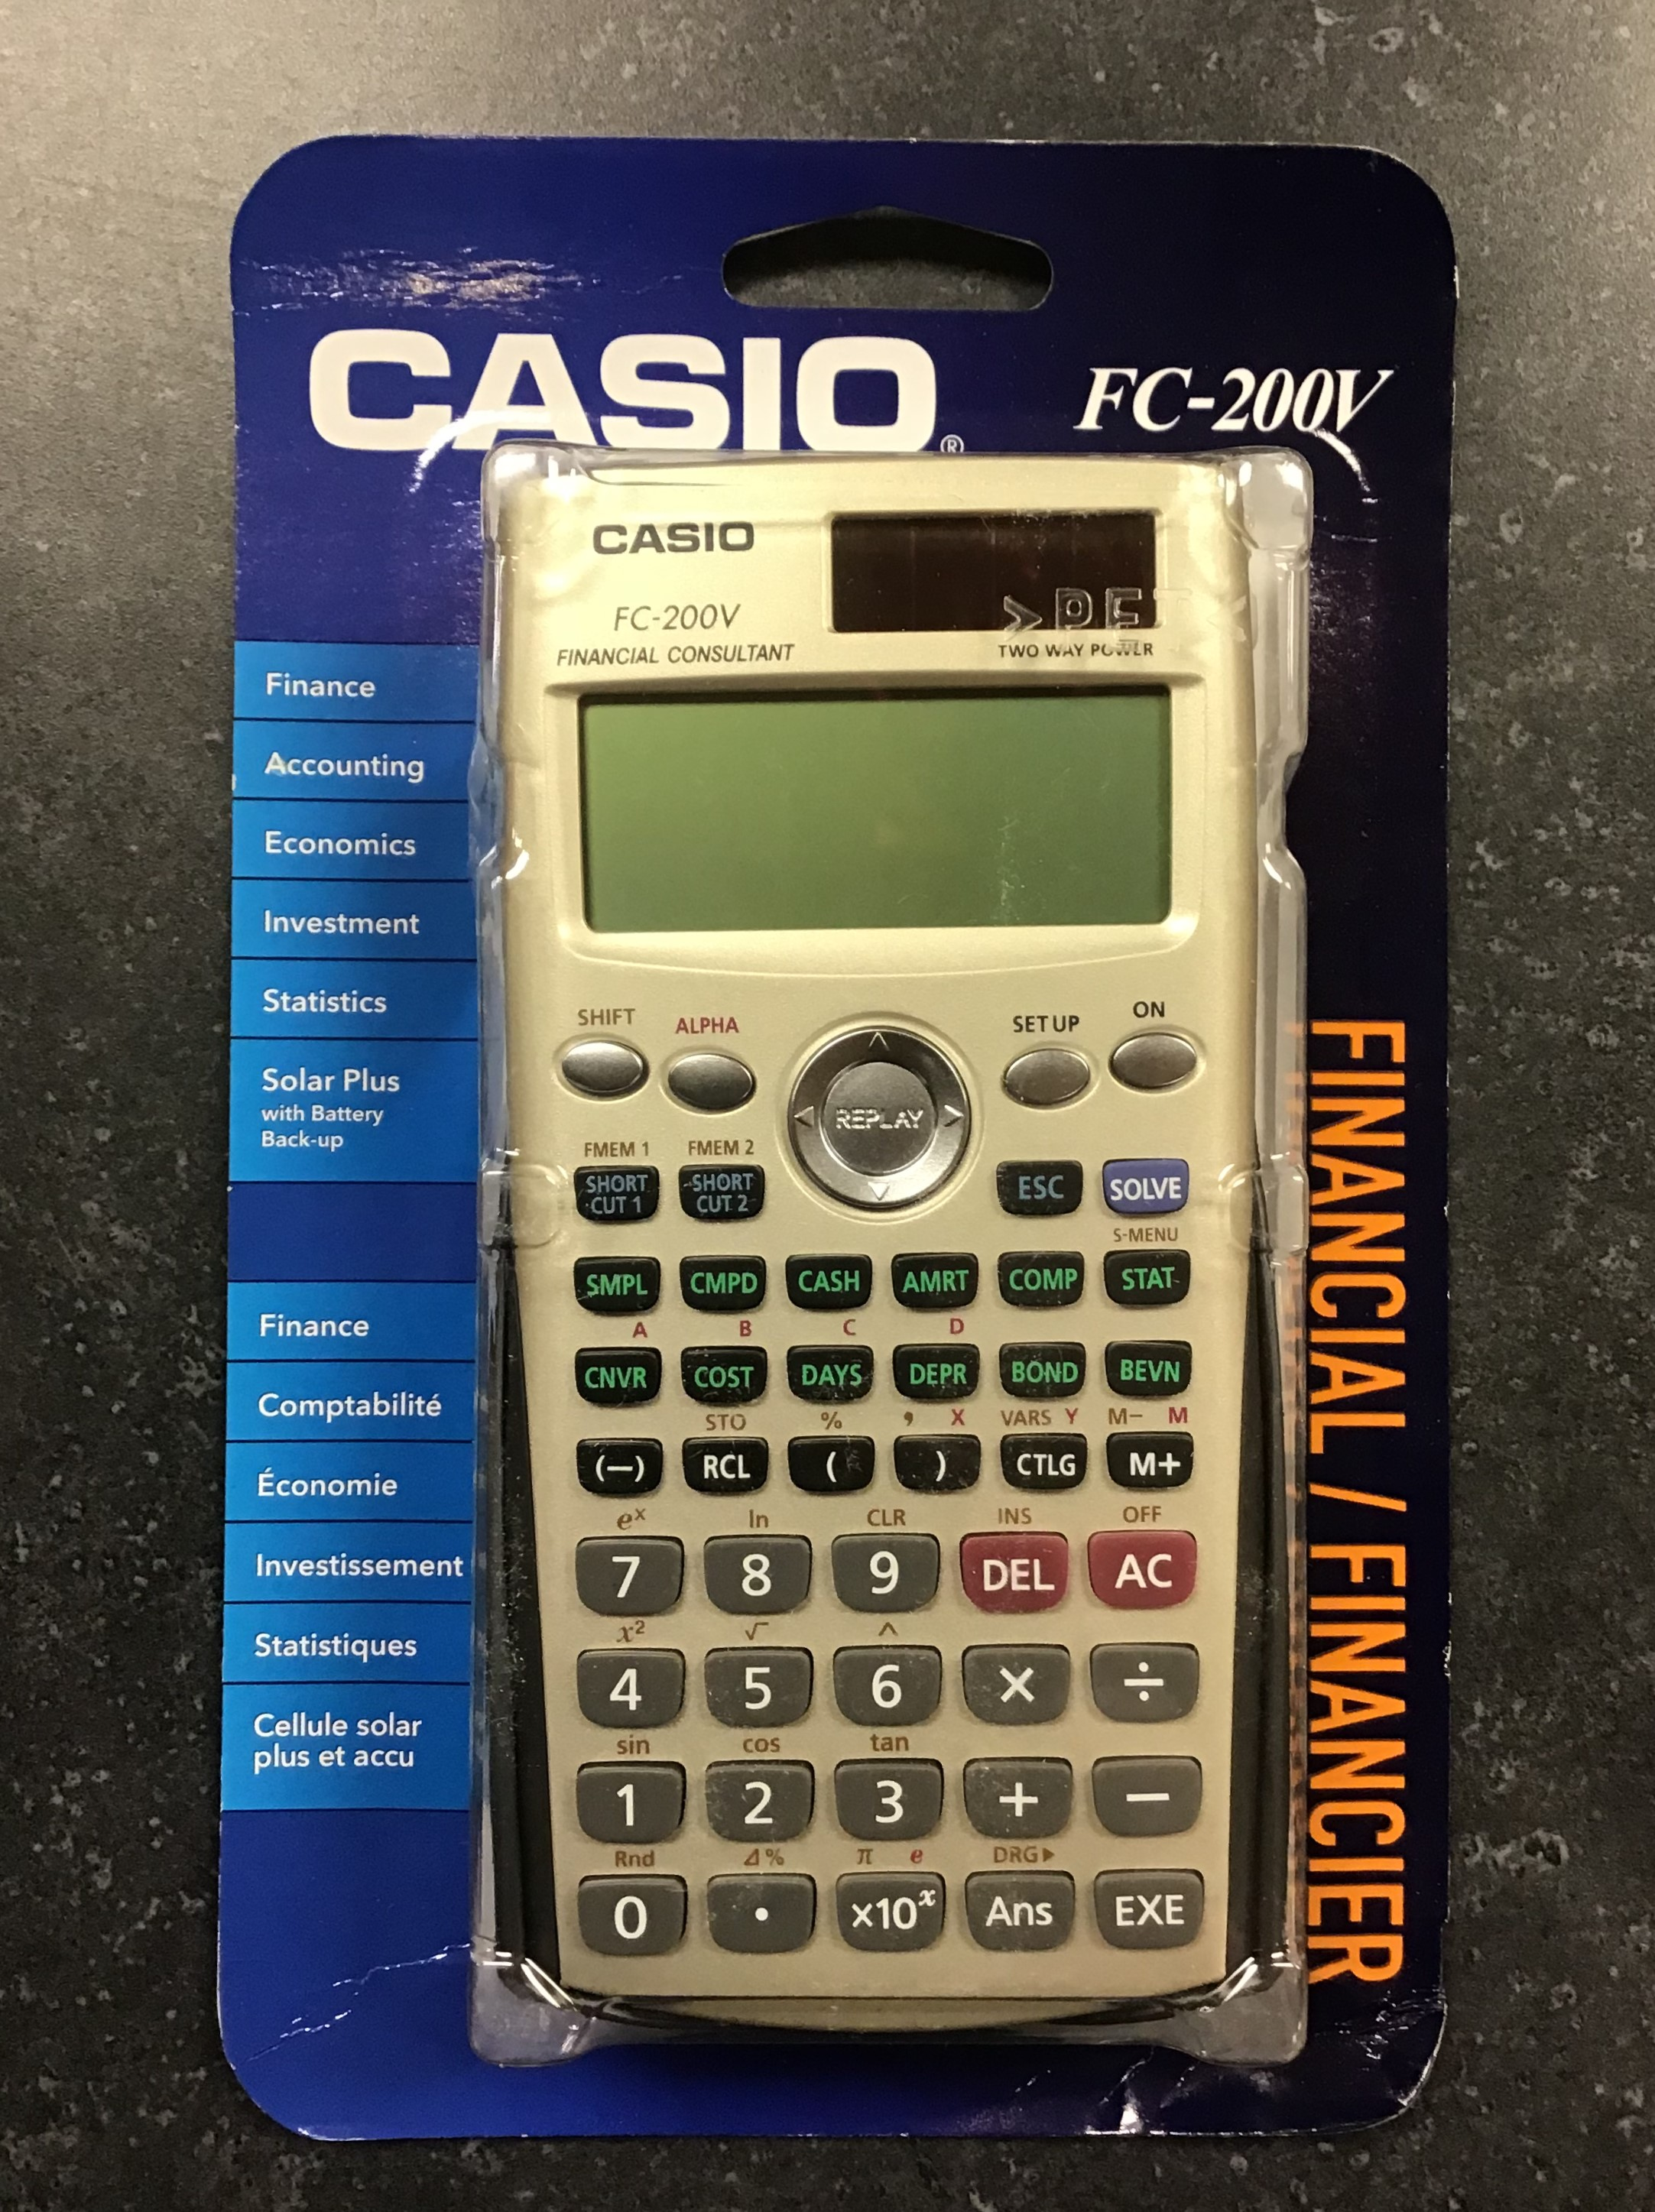 Image for the Casio FC200V Business/Financial Calculator product